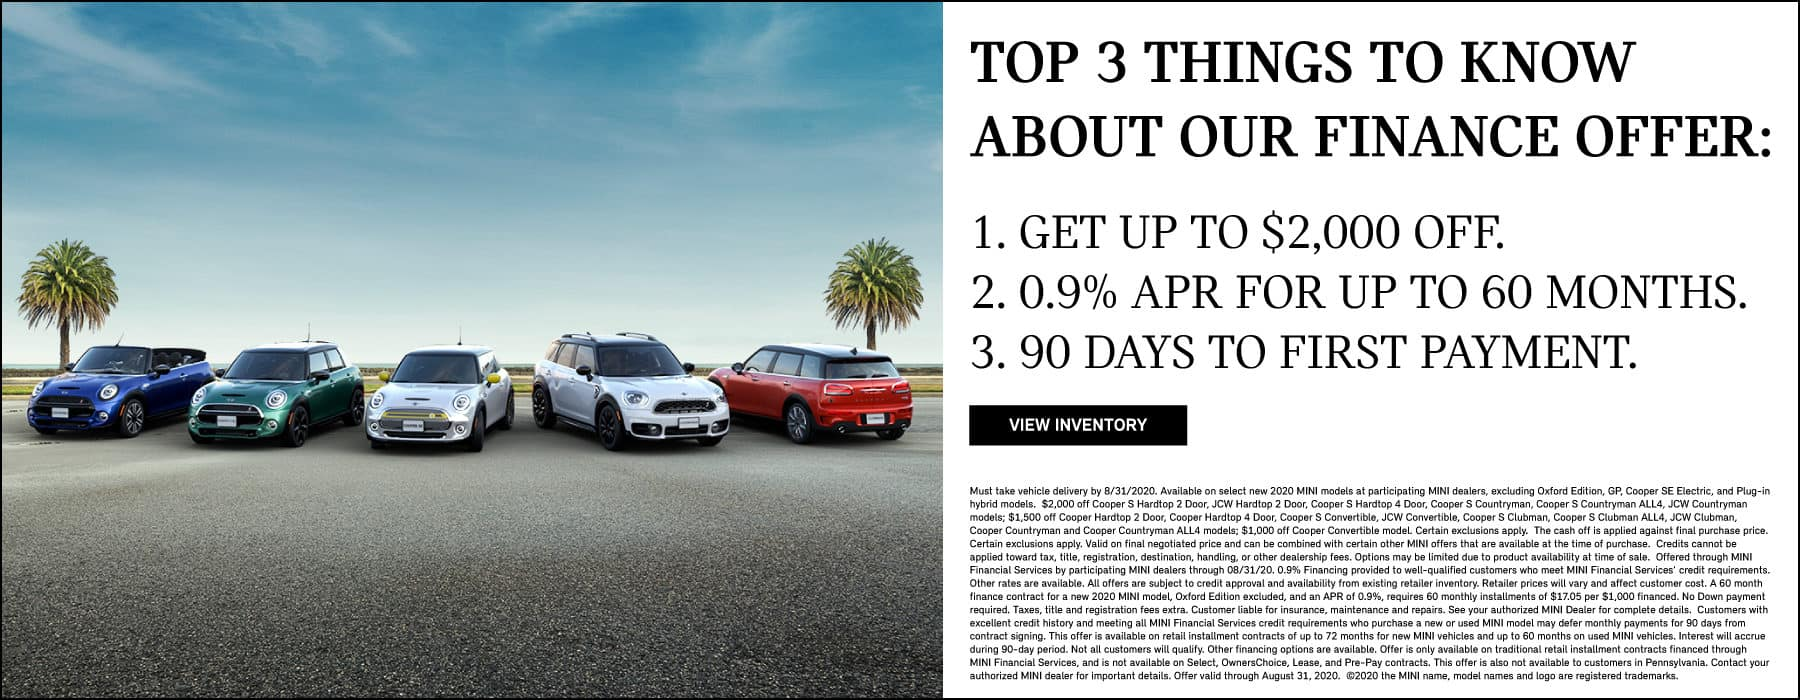 TOP 3 THINGS TO KNOW ABOUT OUR FINANCE OFFER: 1. GET UP TO $2,000 OFF 2. 0.9% APR UP TO 60 MONTHS 3. 90 DAYS TO FIRST PAYMENT. VIEW OFFER BUTTON. SEE DEALER FOR COMPLETE DETAILS.